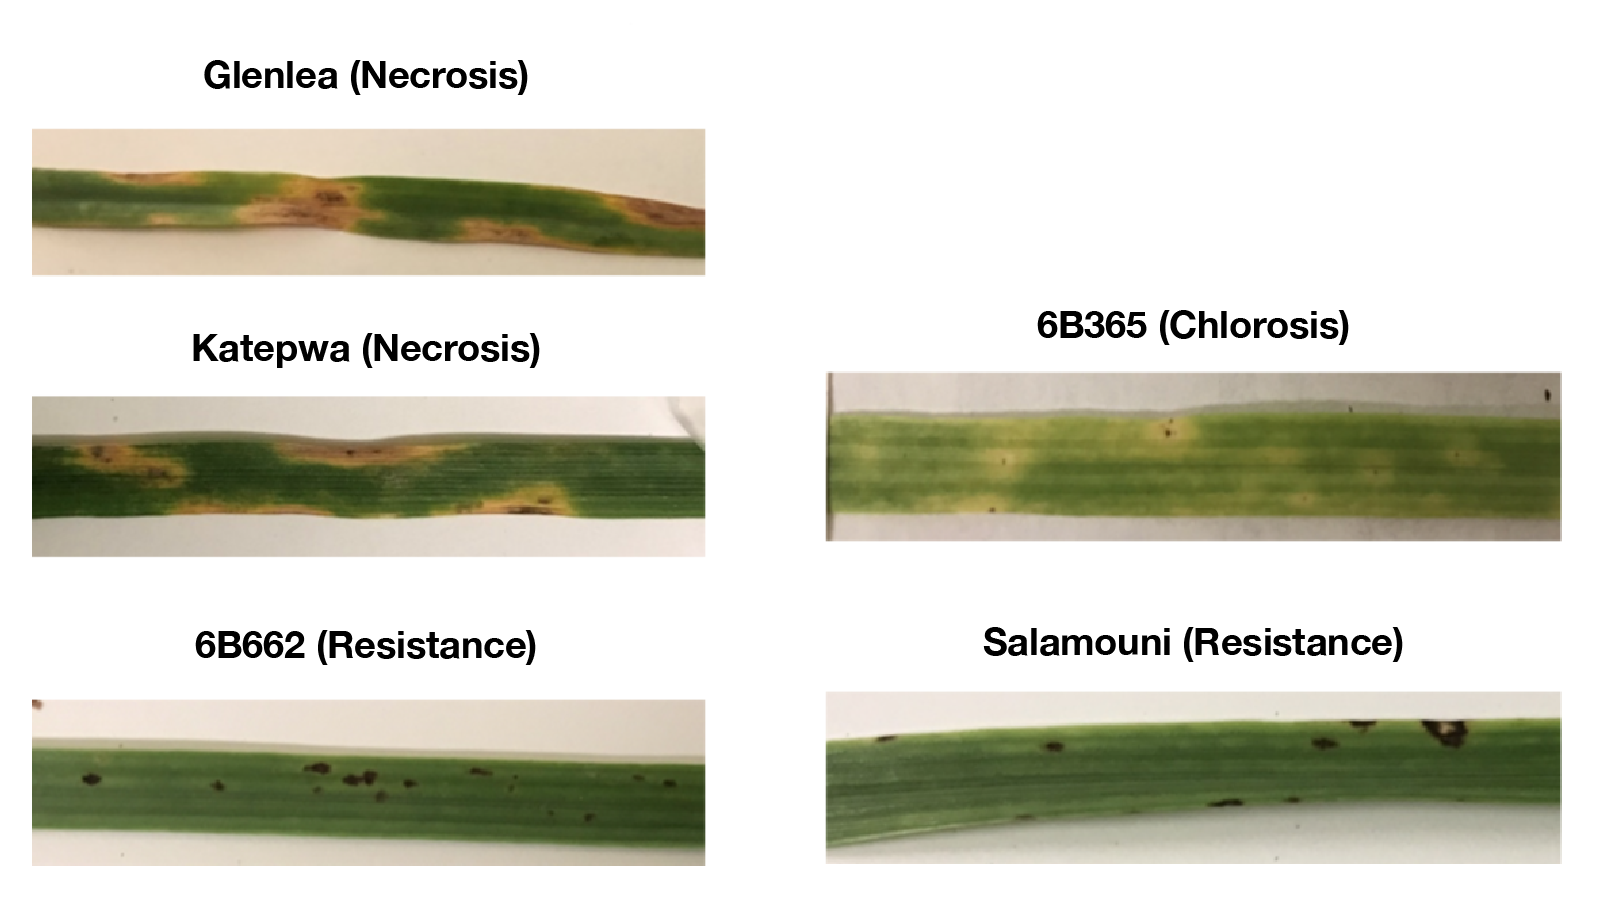 Symptoms caused on wheat leaves by toxins produced by Pyrenophora tritici-repentis (causal fungus of tan spot of wheat).